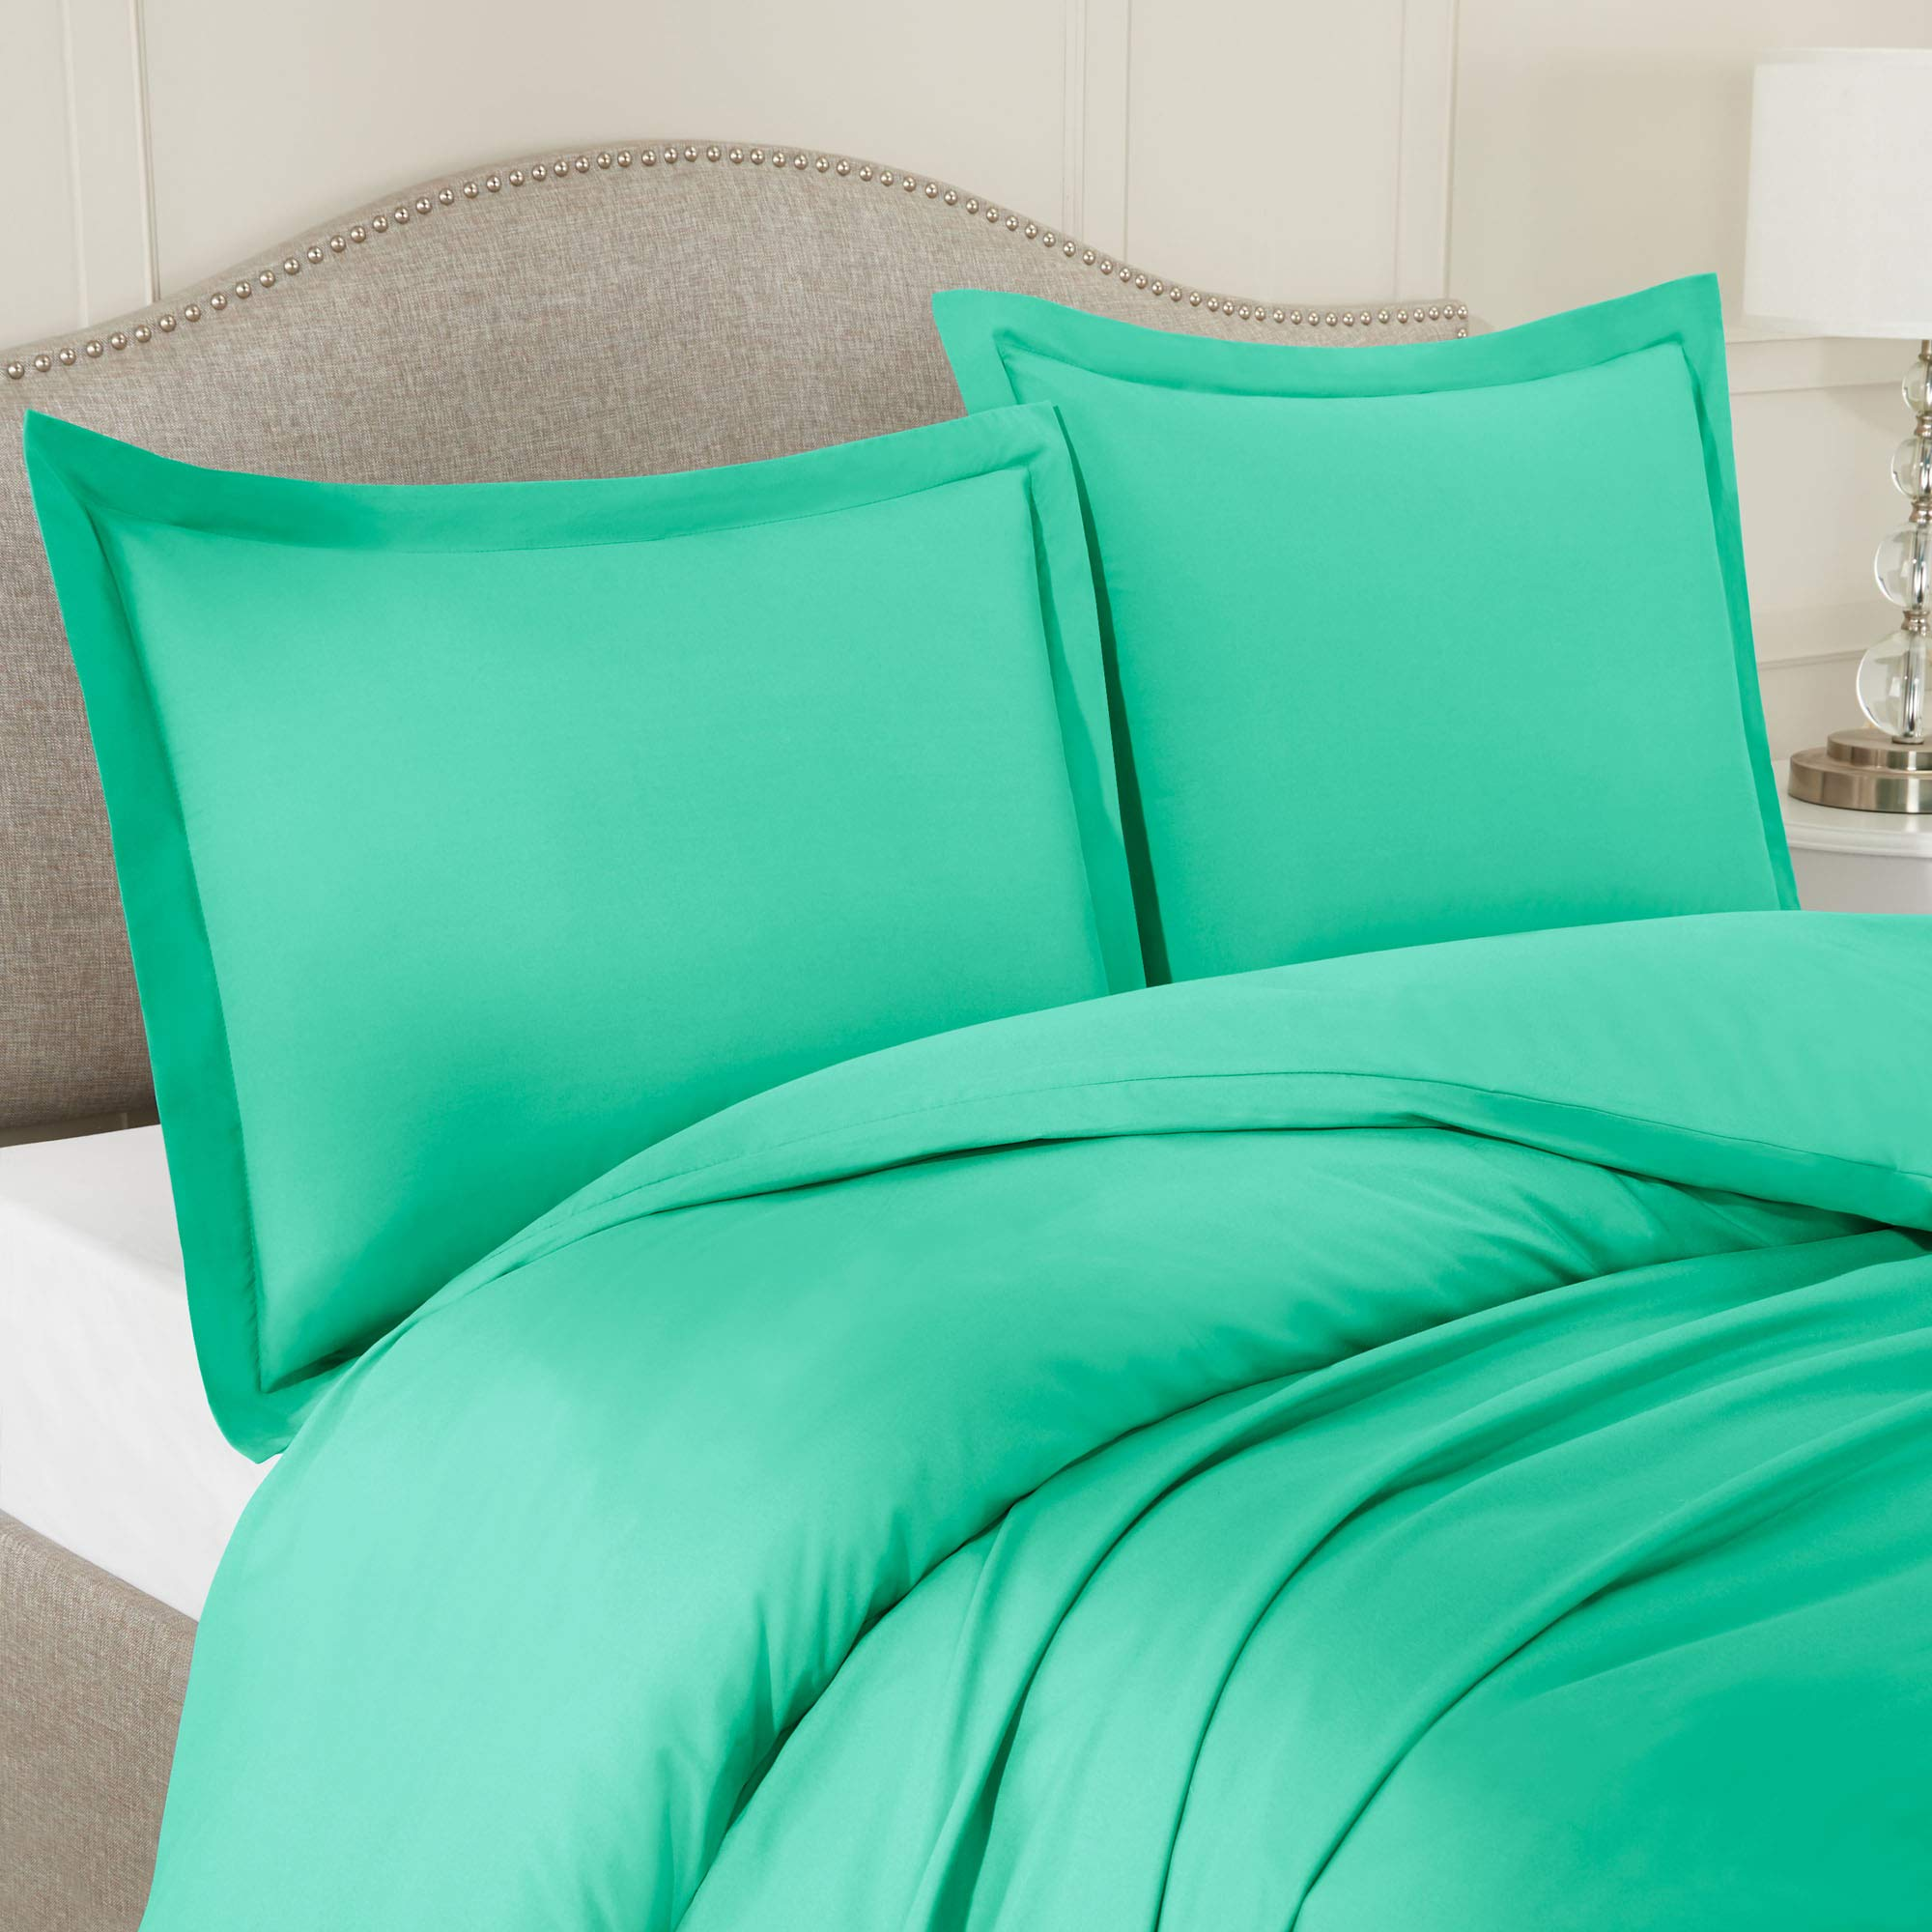 Ultra-Soft Double Brushed Microfiber Duvet Cover